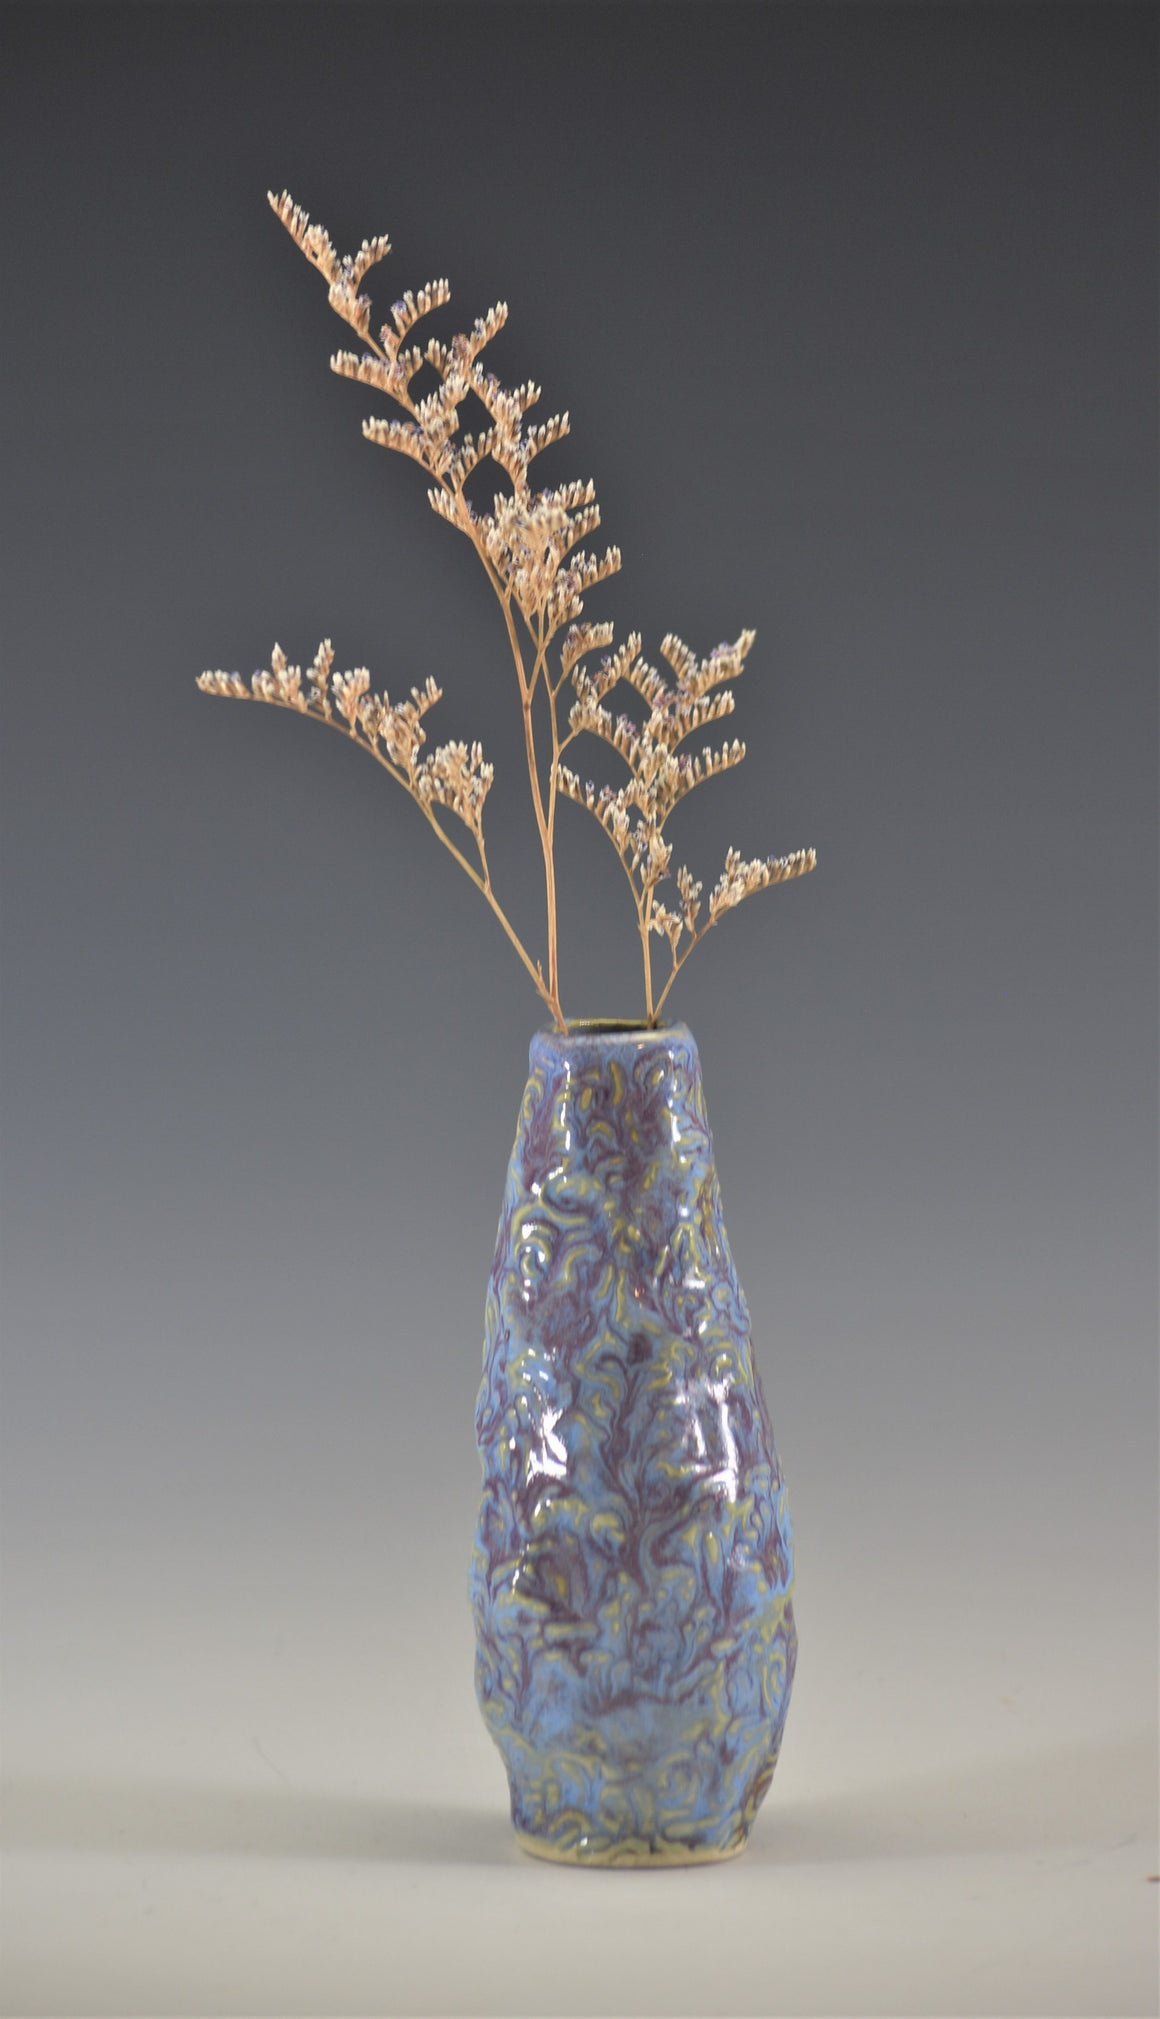 Swirls Bud Vase in light blue and lavender